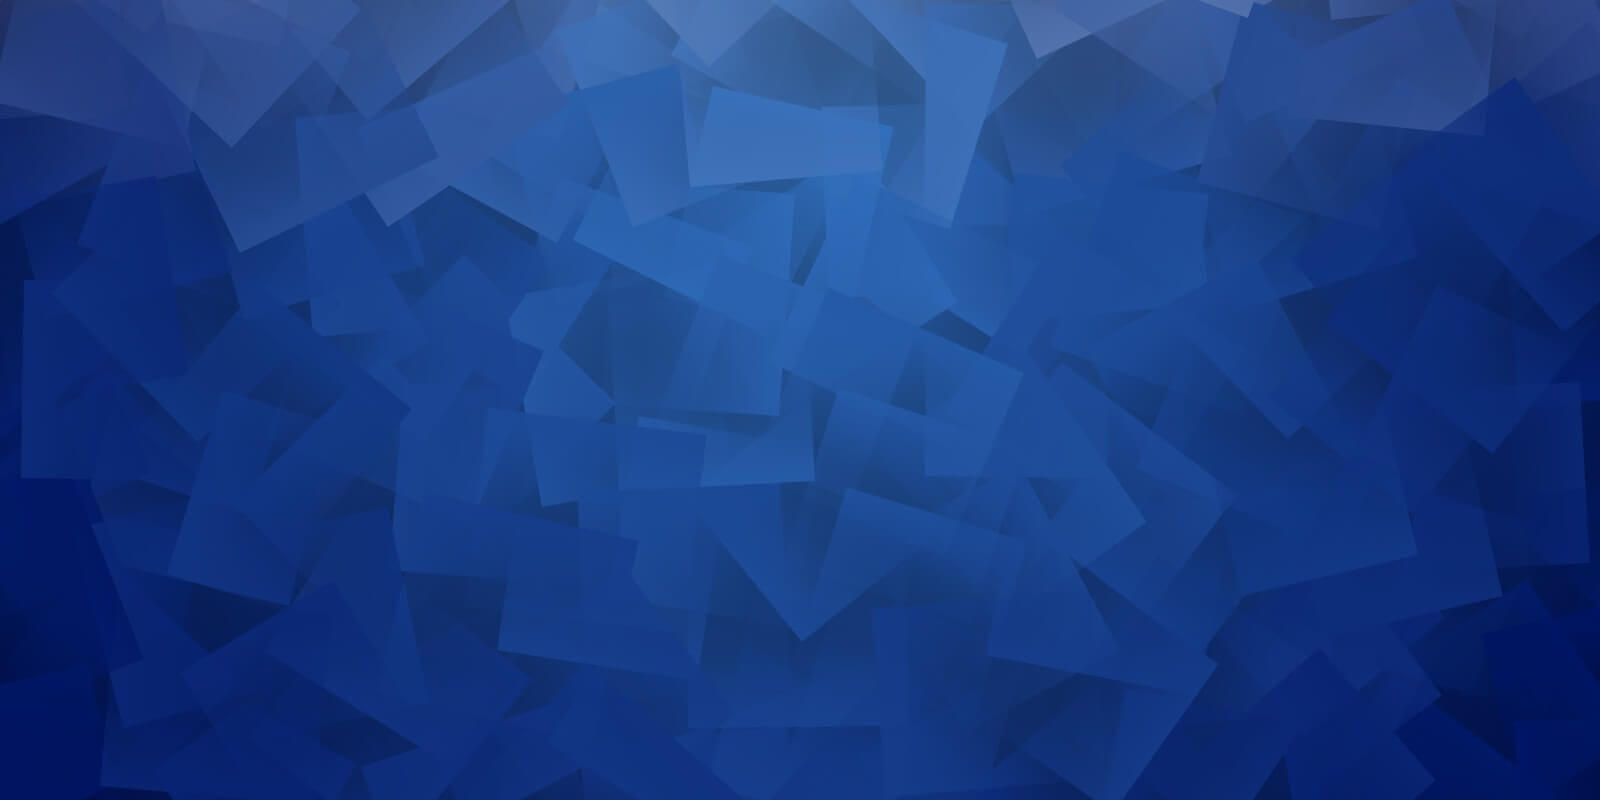 Blue cubic style background.